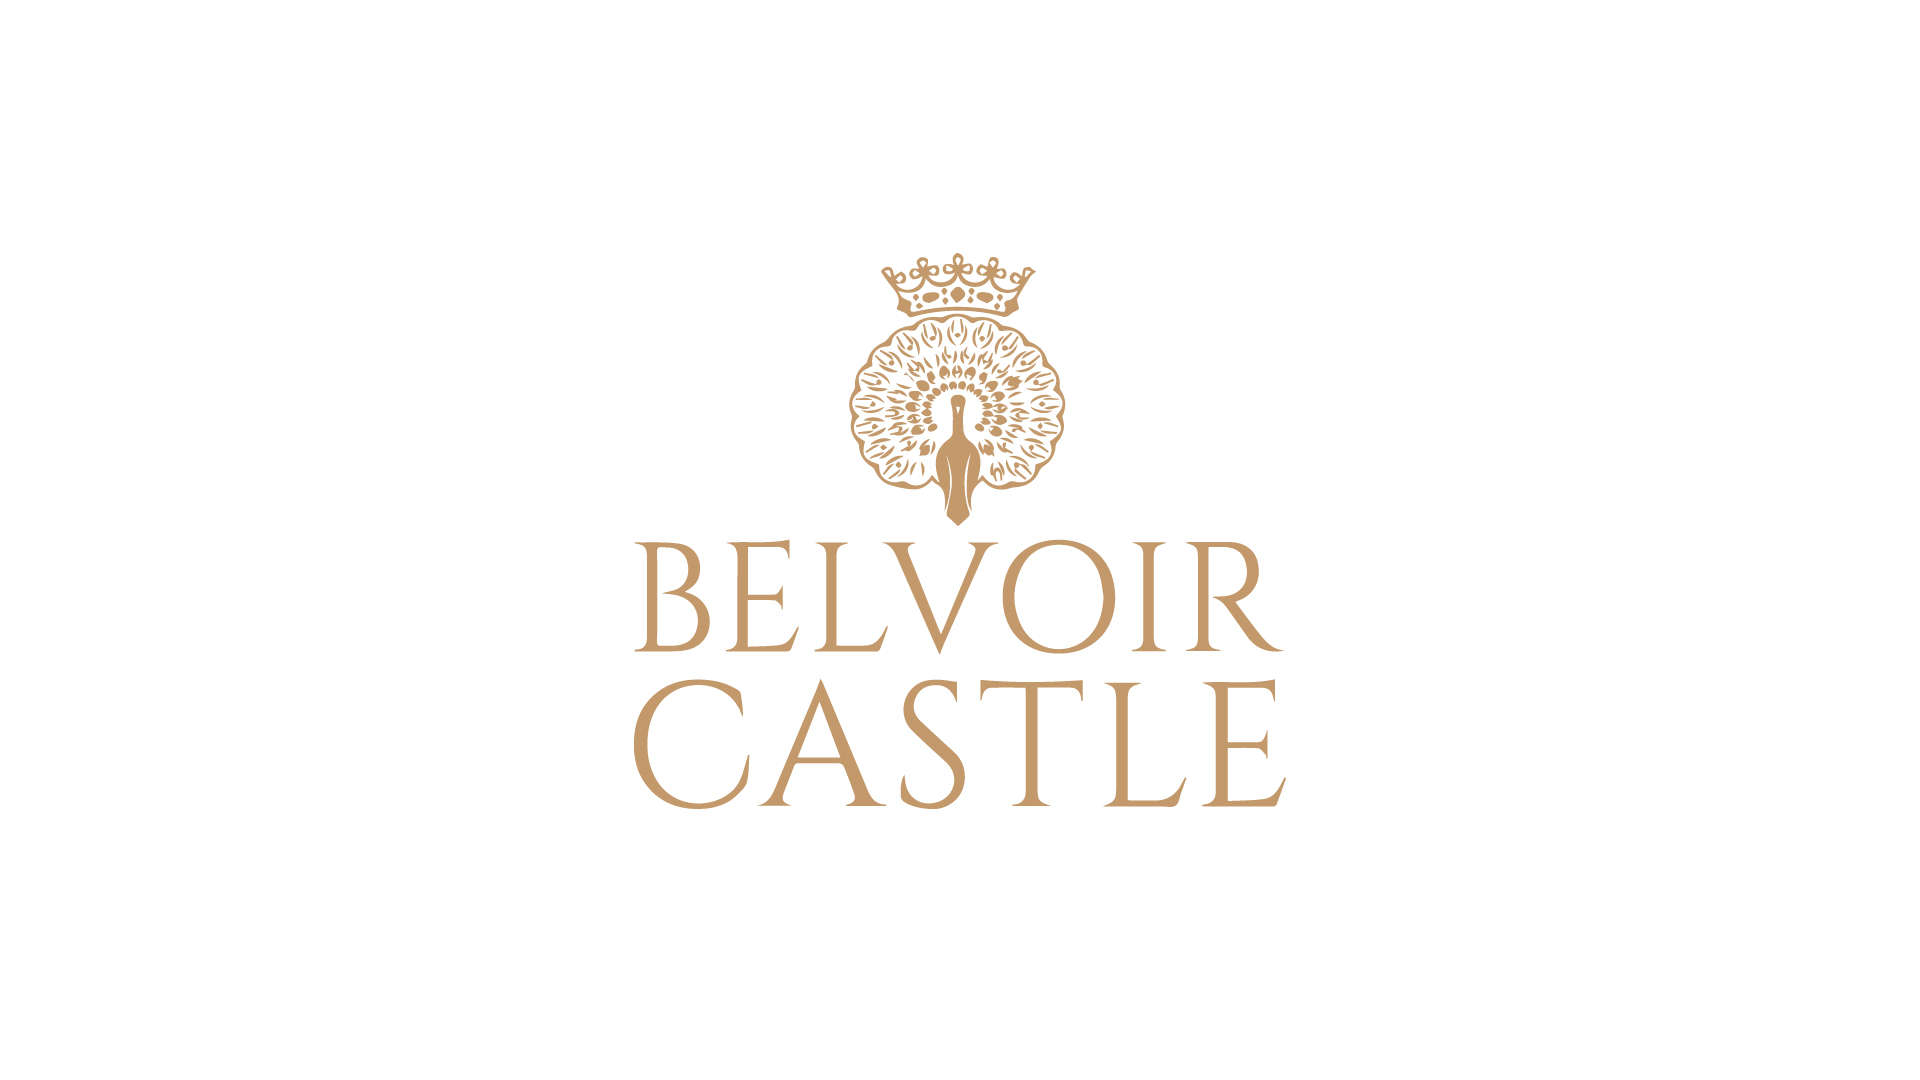 Belvoir Castle, The Engine Yard hosted a spring event to launch the opening of Tribe Campers and Vale House.